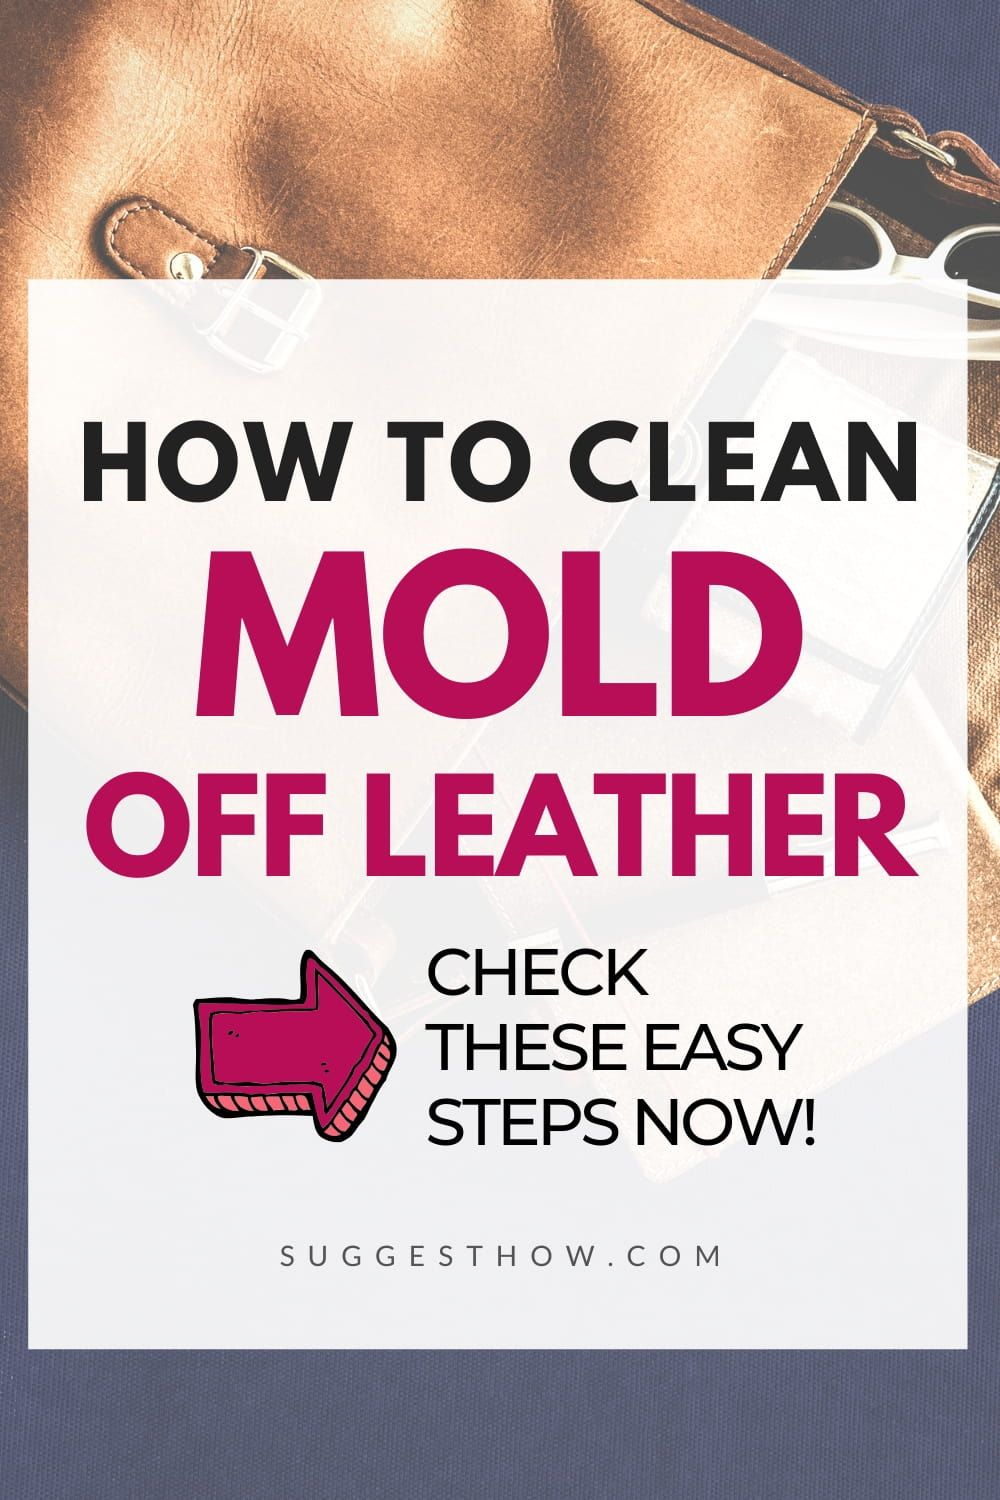 Pin on Cleaning & Polishing Tips